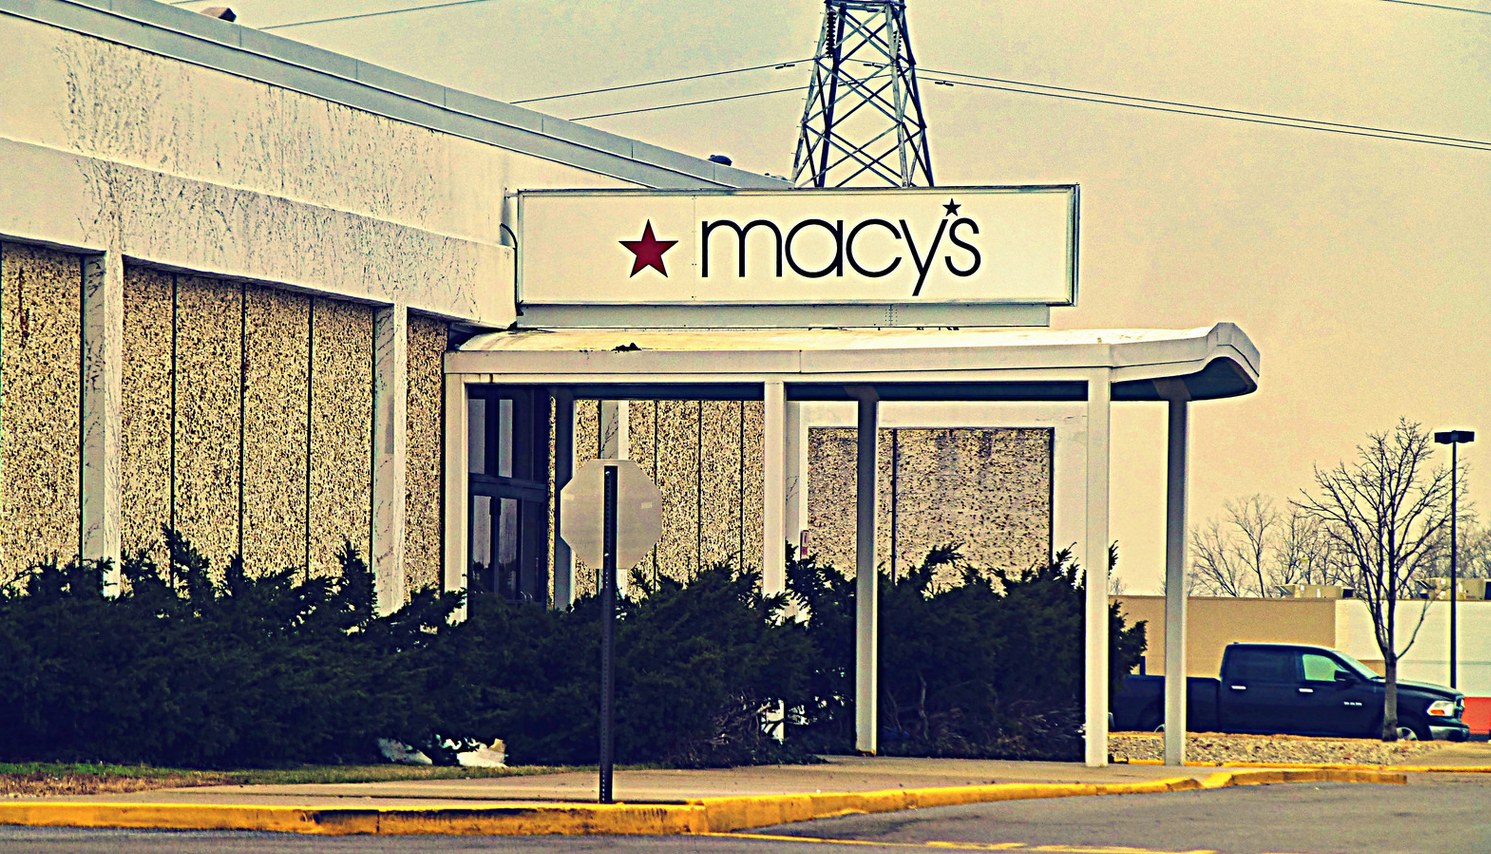 Macy's Will Have Fewer Promotions With Coupons, Lower Clearance Prices